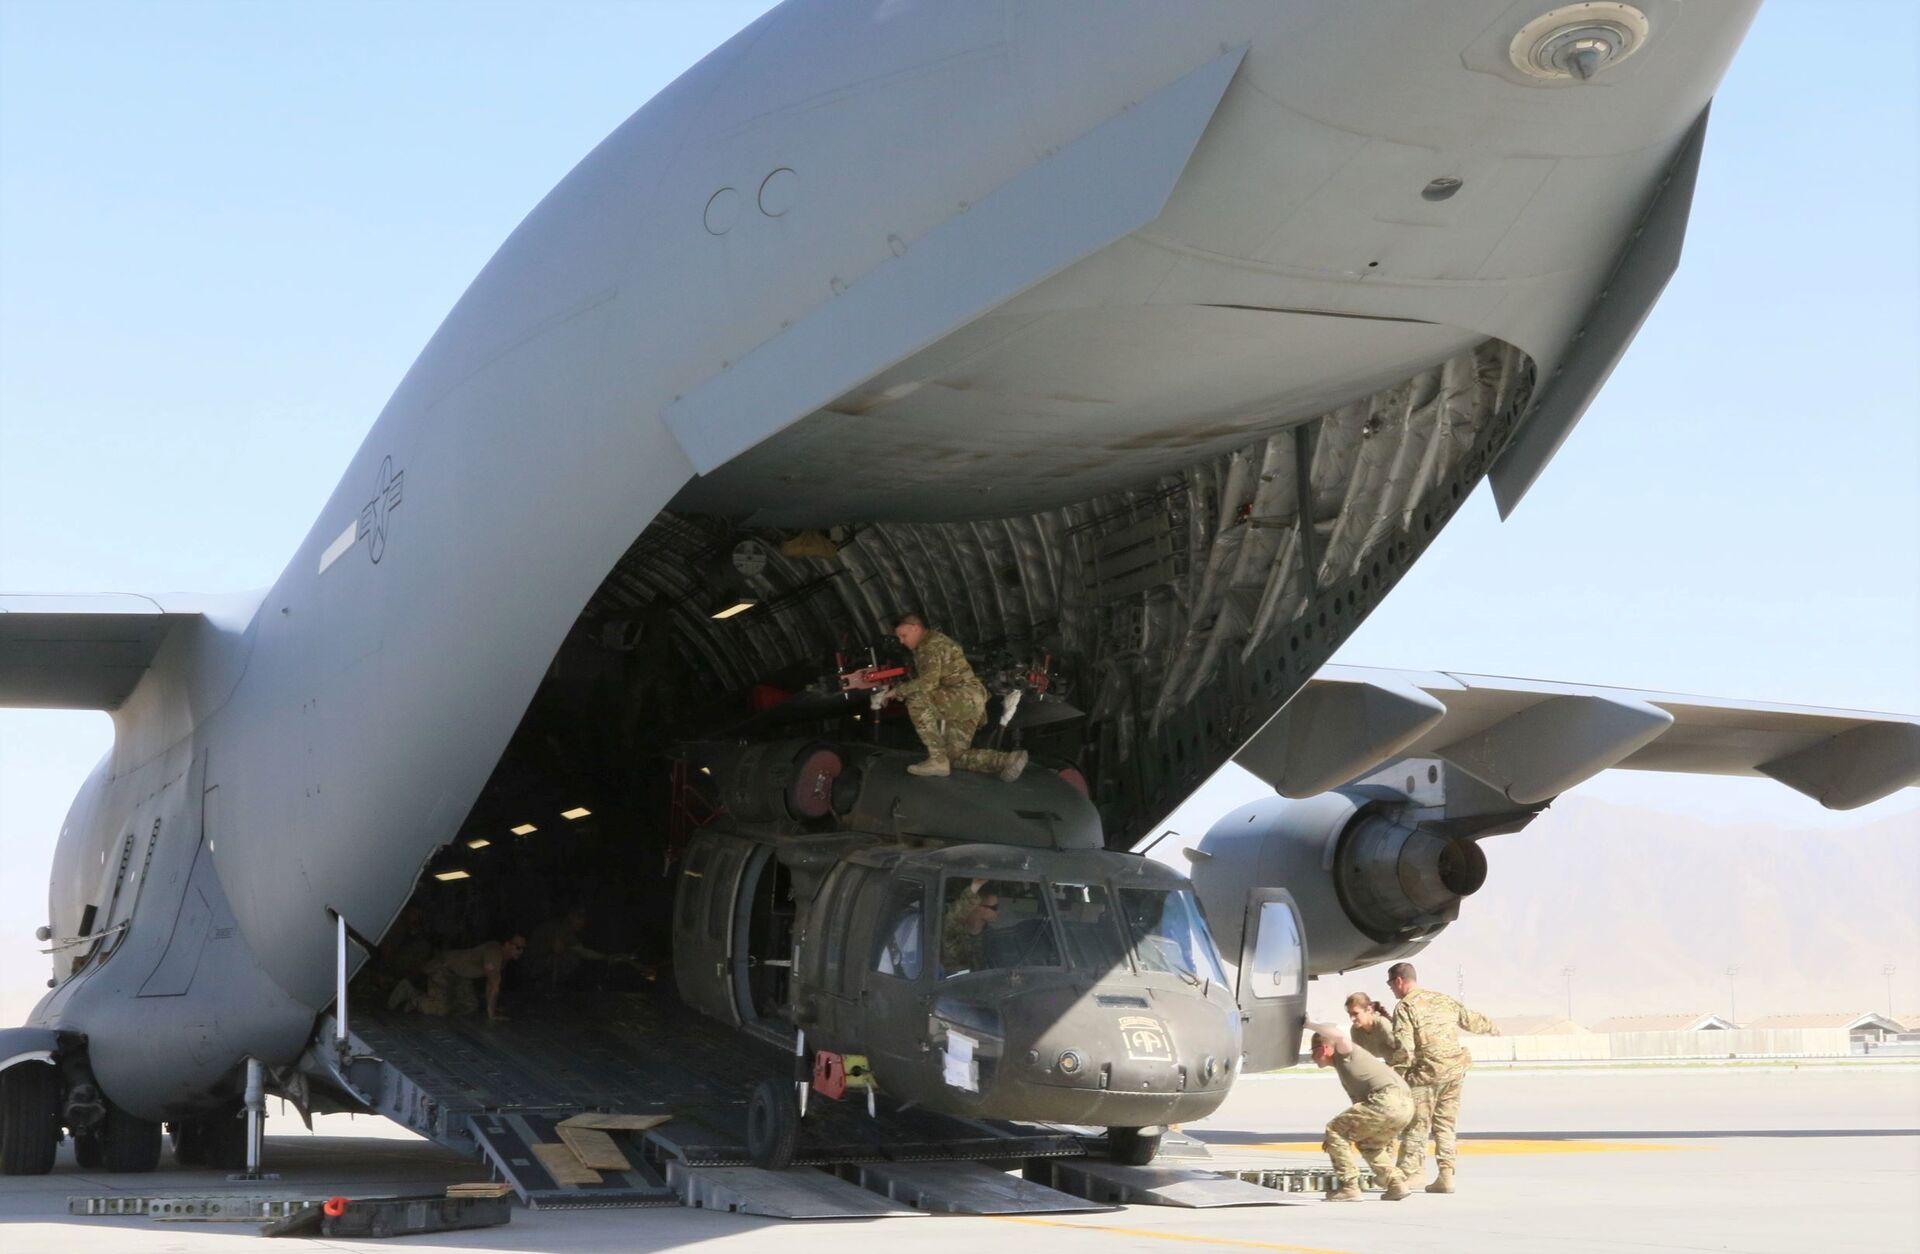 Aerial porters work with maintainers to load a UH-60L Blackhawk helicopter into a U.S. Air Force C-17 Globemaster III during the withdrawl of American forces in Afghanistan, June 16, 2021. Picture taken June 16, 2021 - Sputnik International, 1920, 07.09.2021